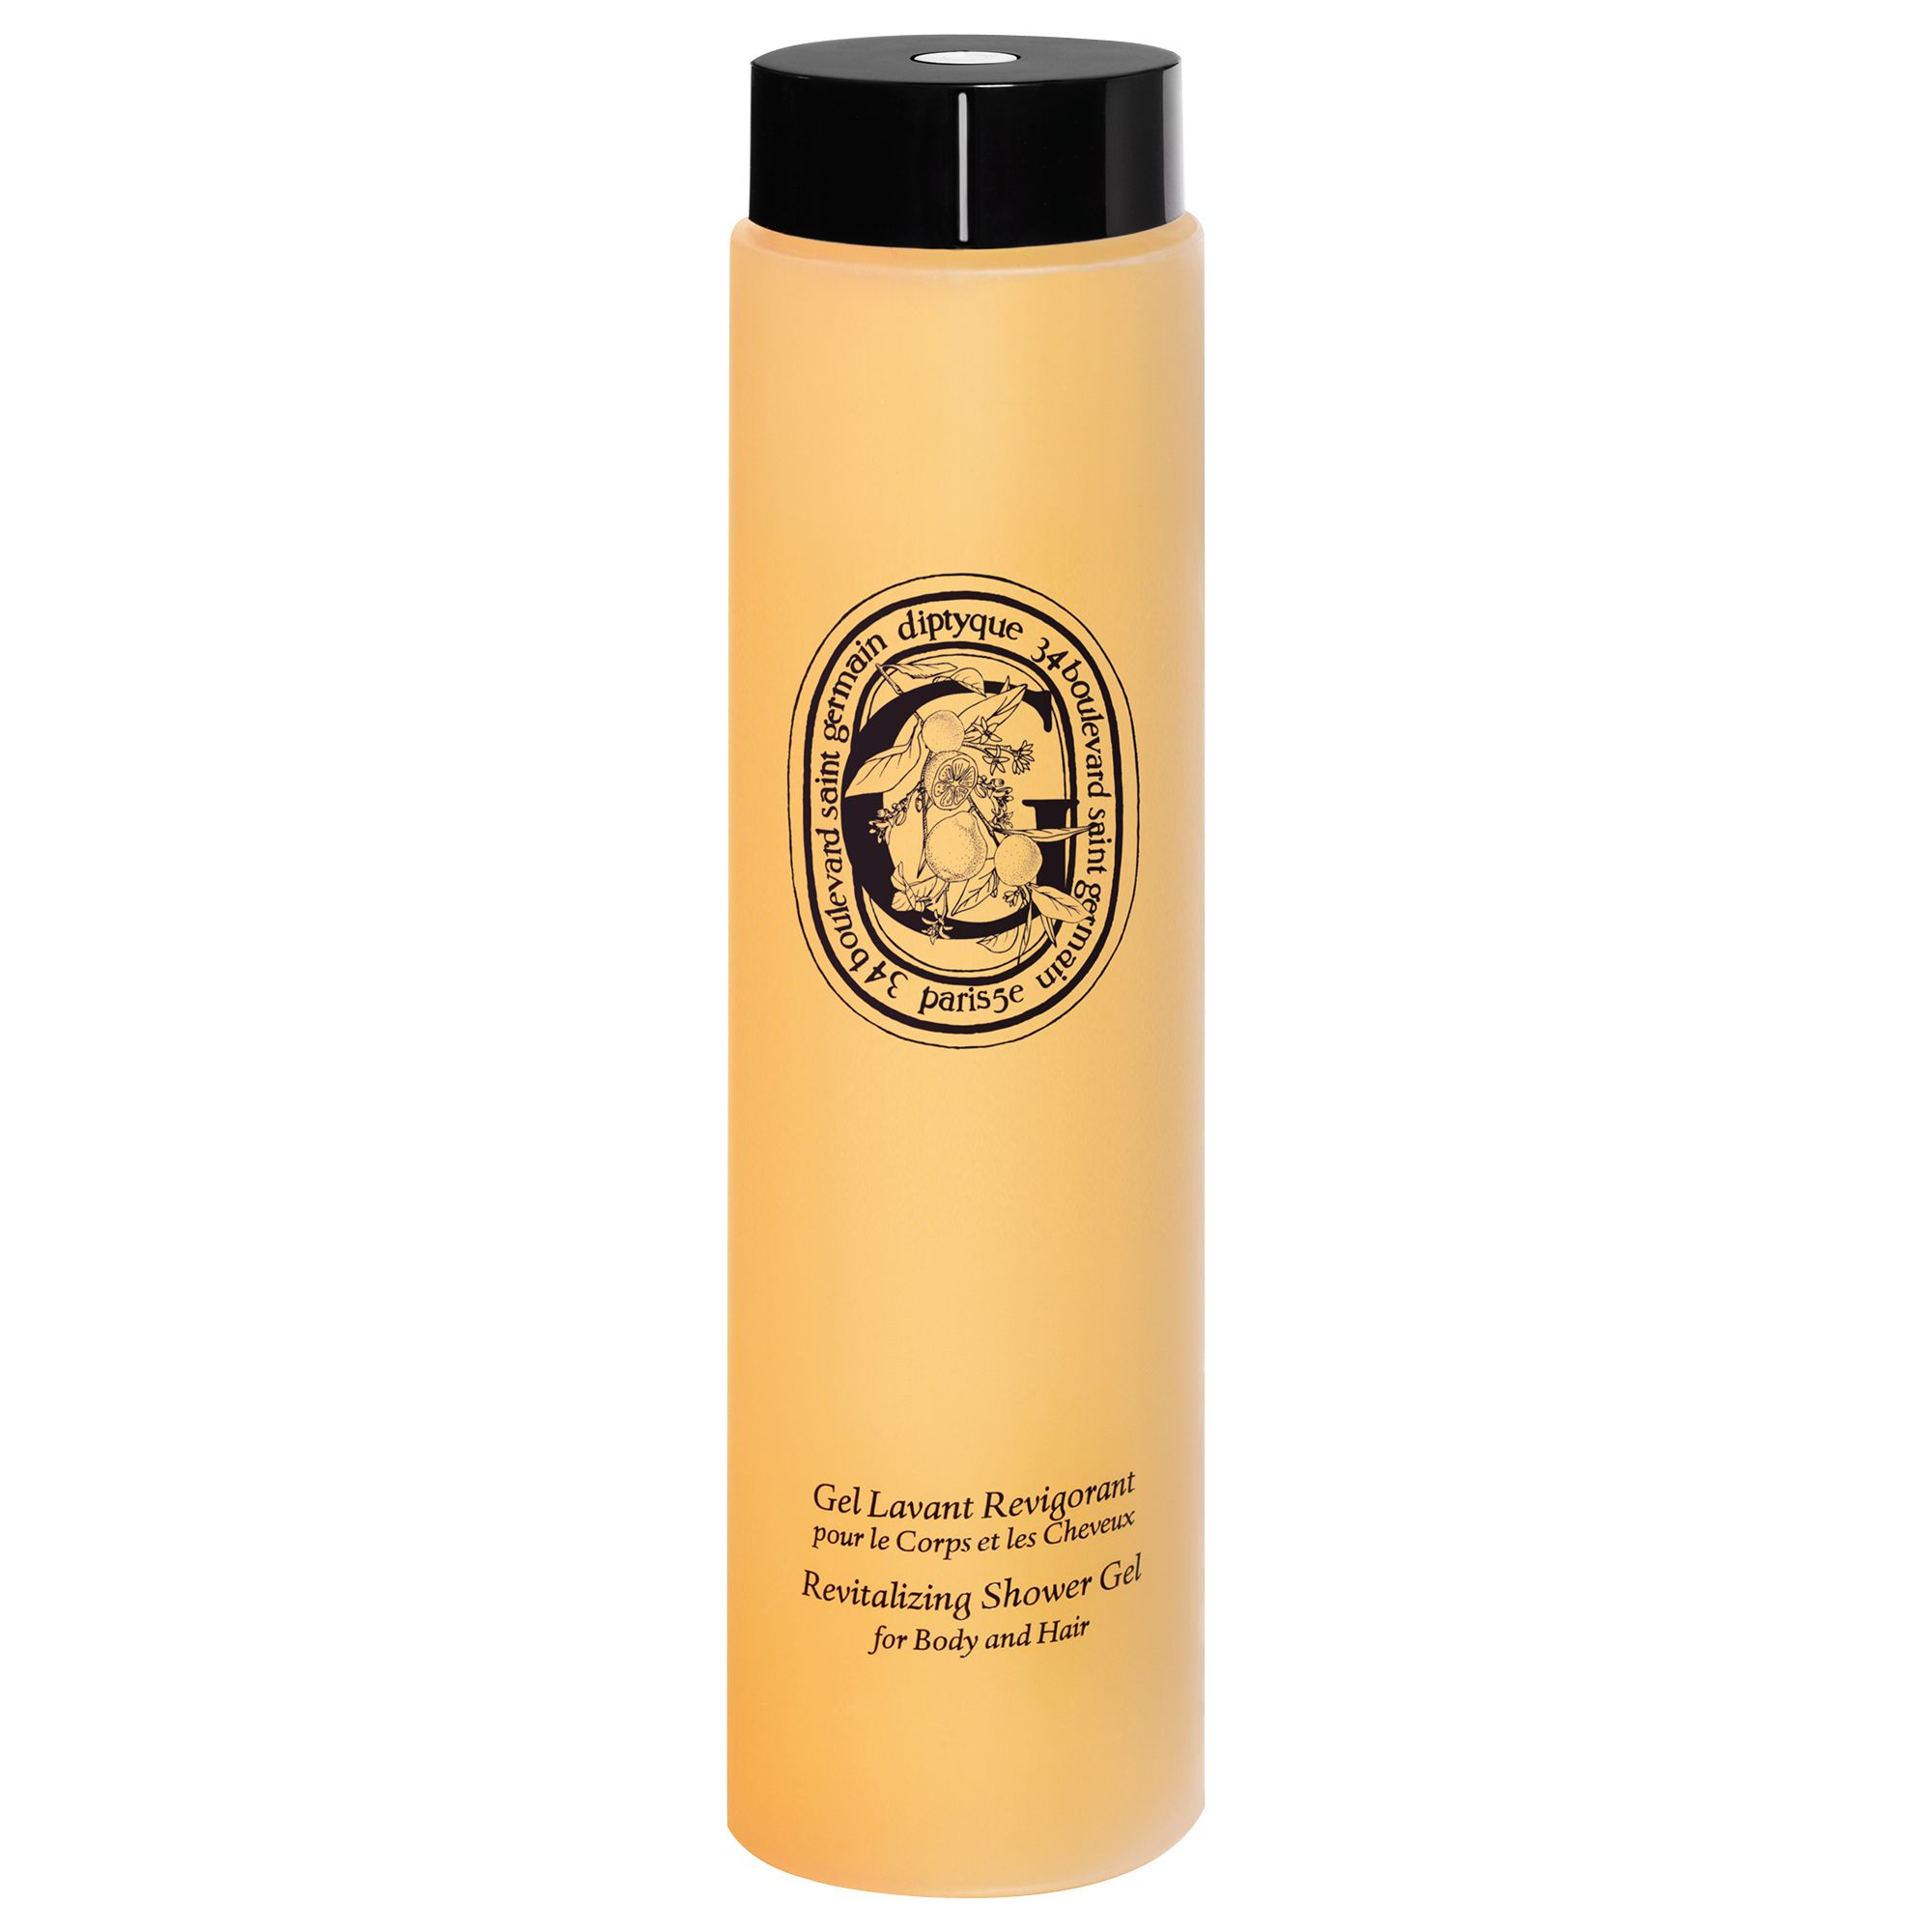 Diptyque Diptyque Revitalising Shower Gel for Body and Hair, 200ml